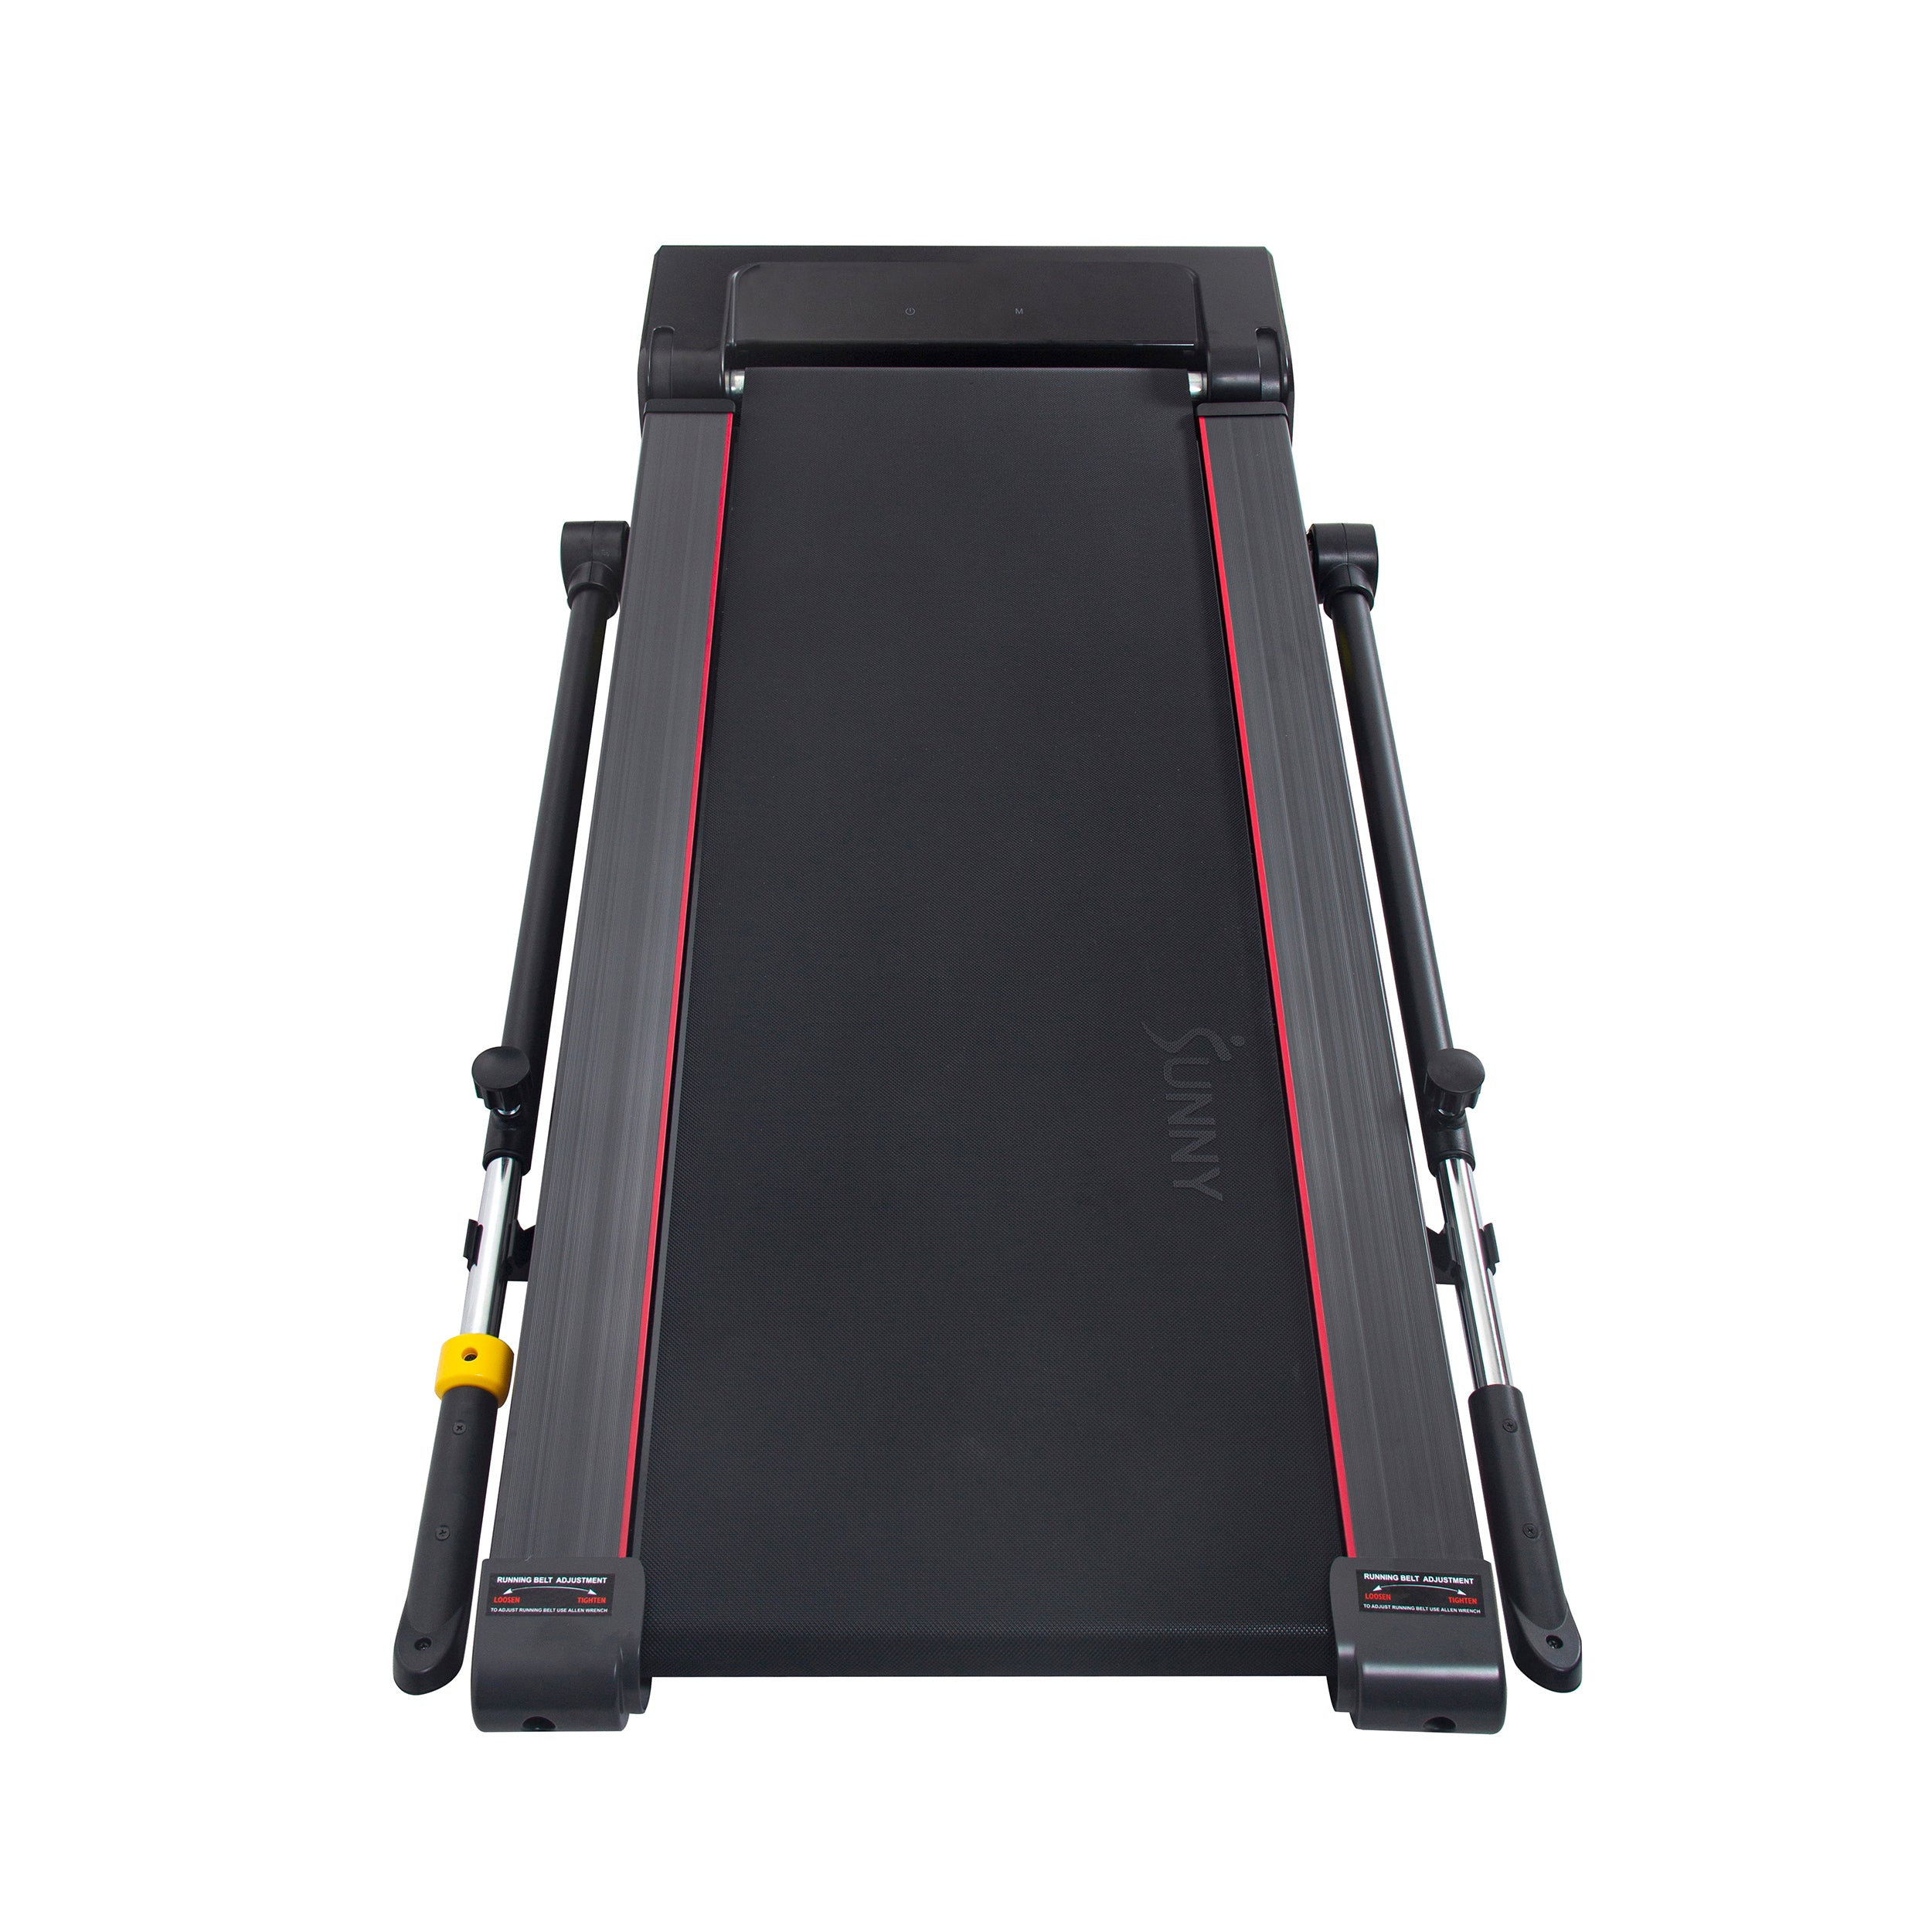 sunny-health-fitness-treadmills-slim-folding-treadmill-trekpad-arm-exercisers-SF-T7971-preassembled